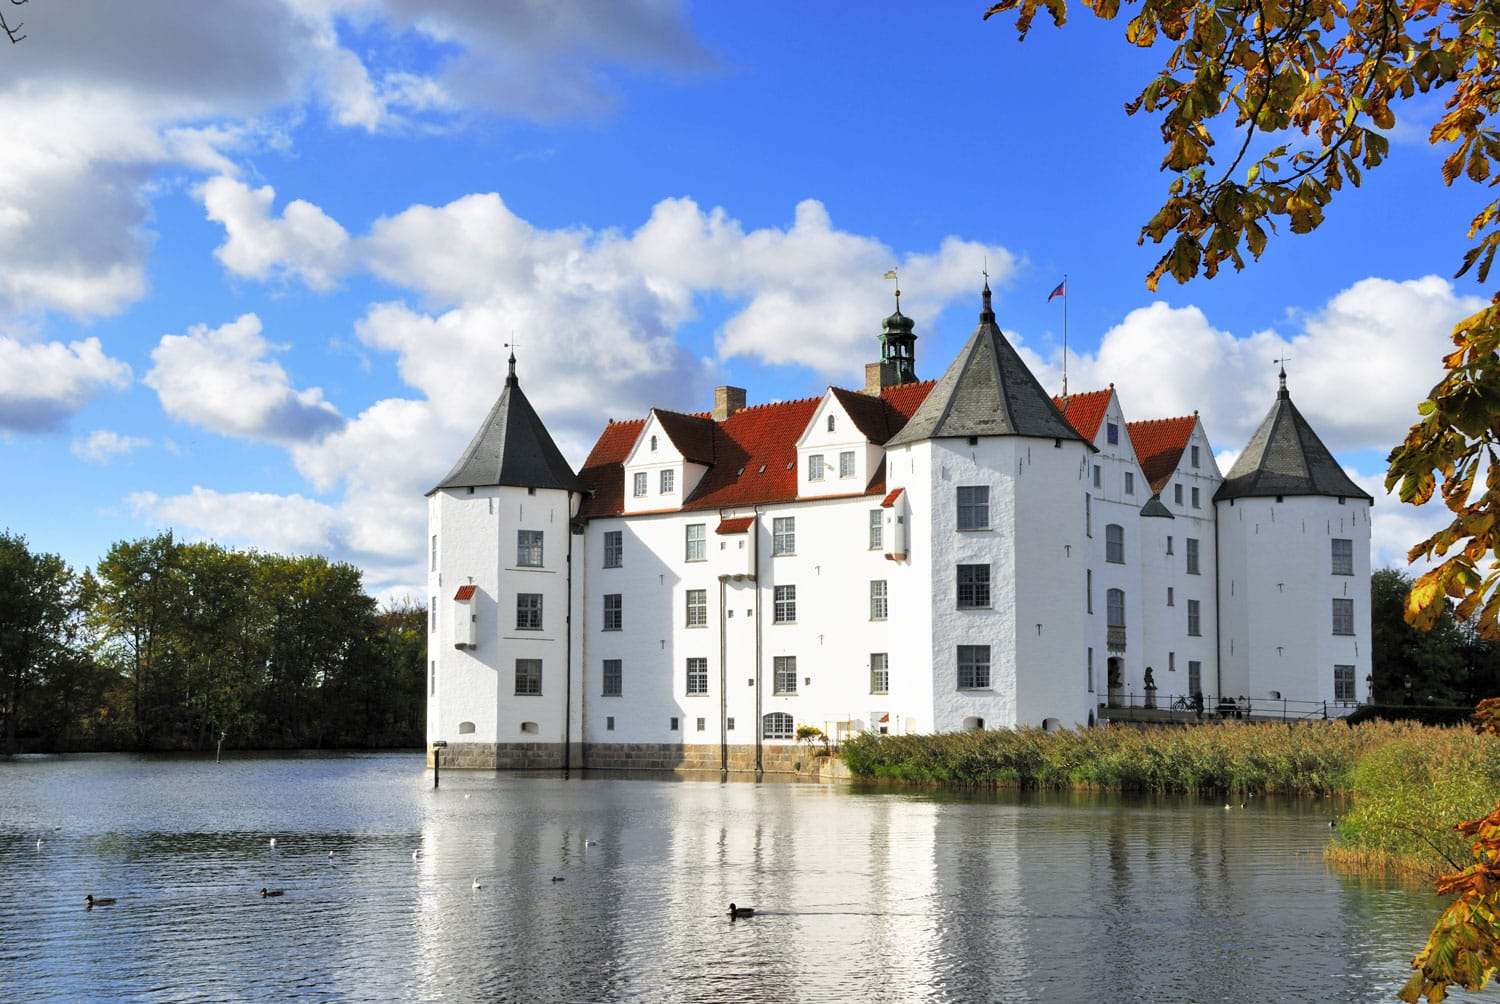 The Castle of Glucksburg in Flensburg German